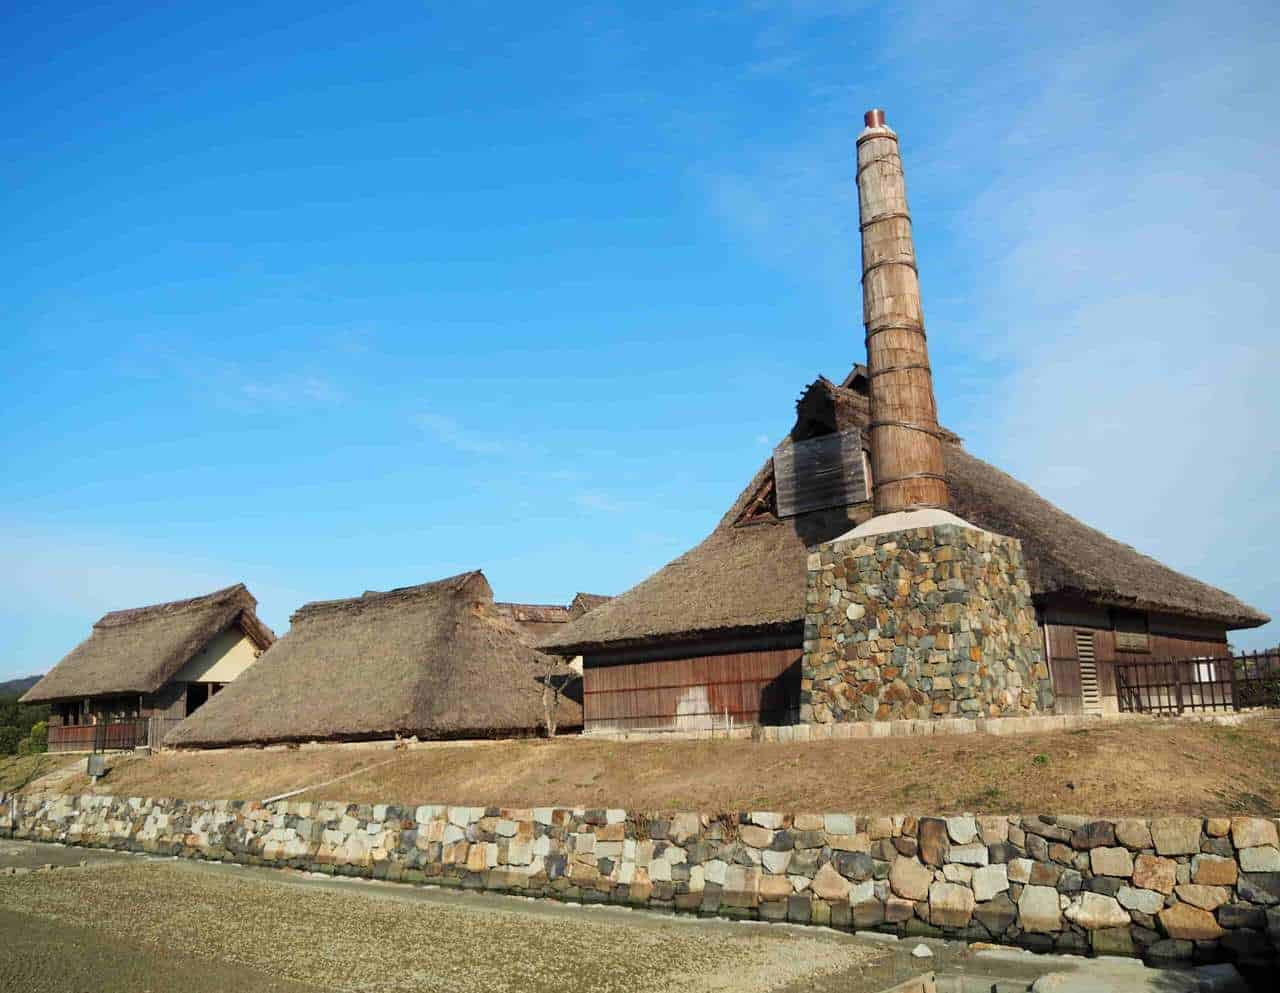 The History of Ako: 47 Ronin, Traditional Architecture, and the Art of Salt Making